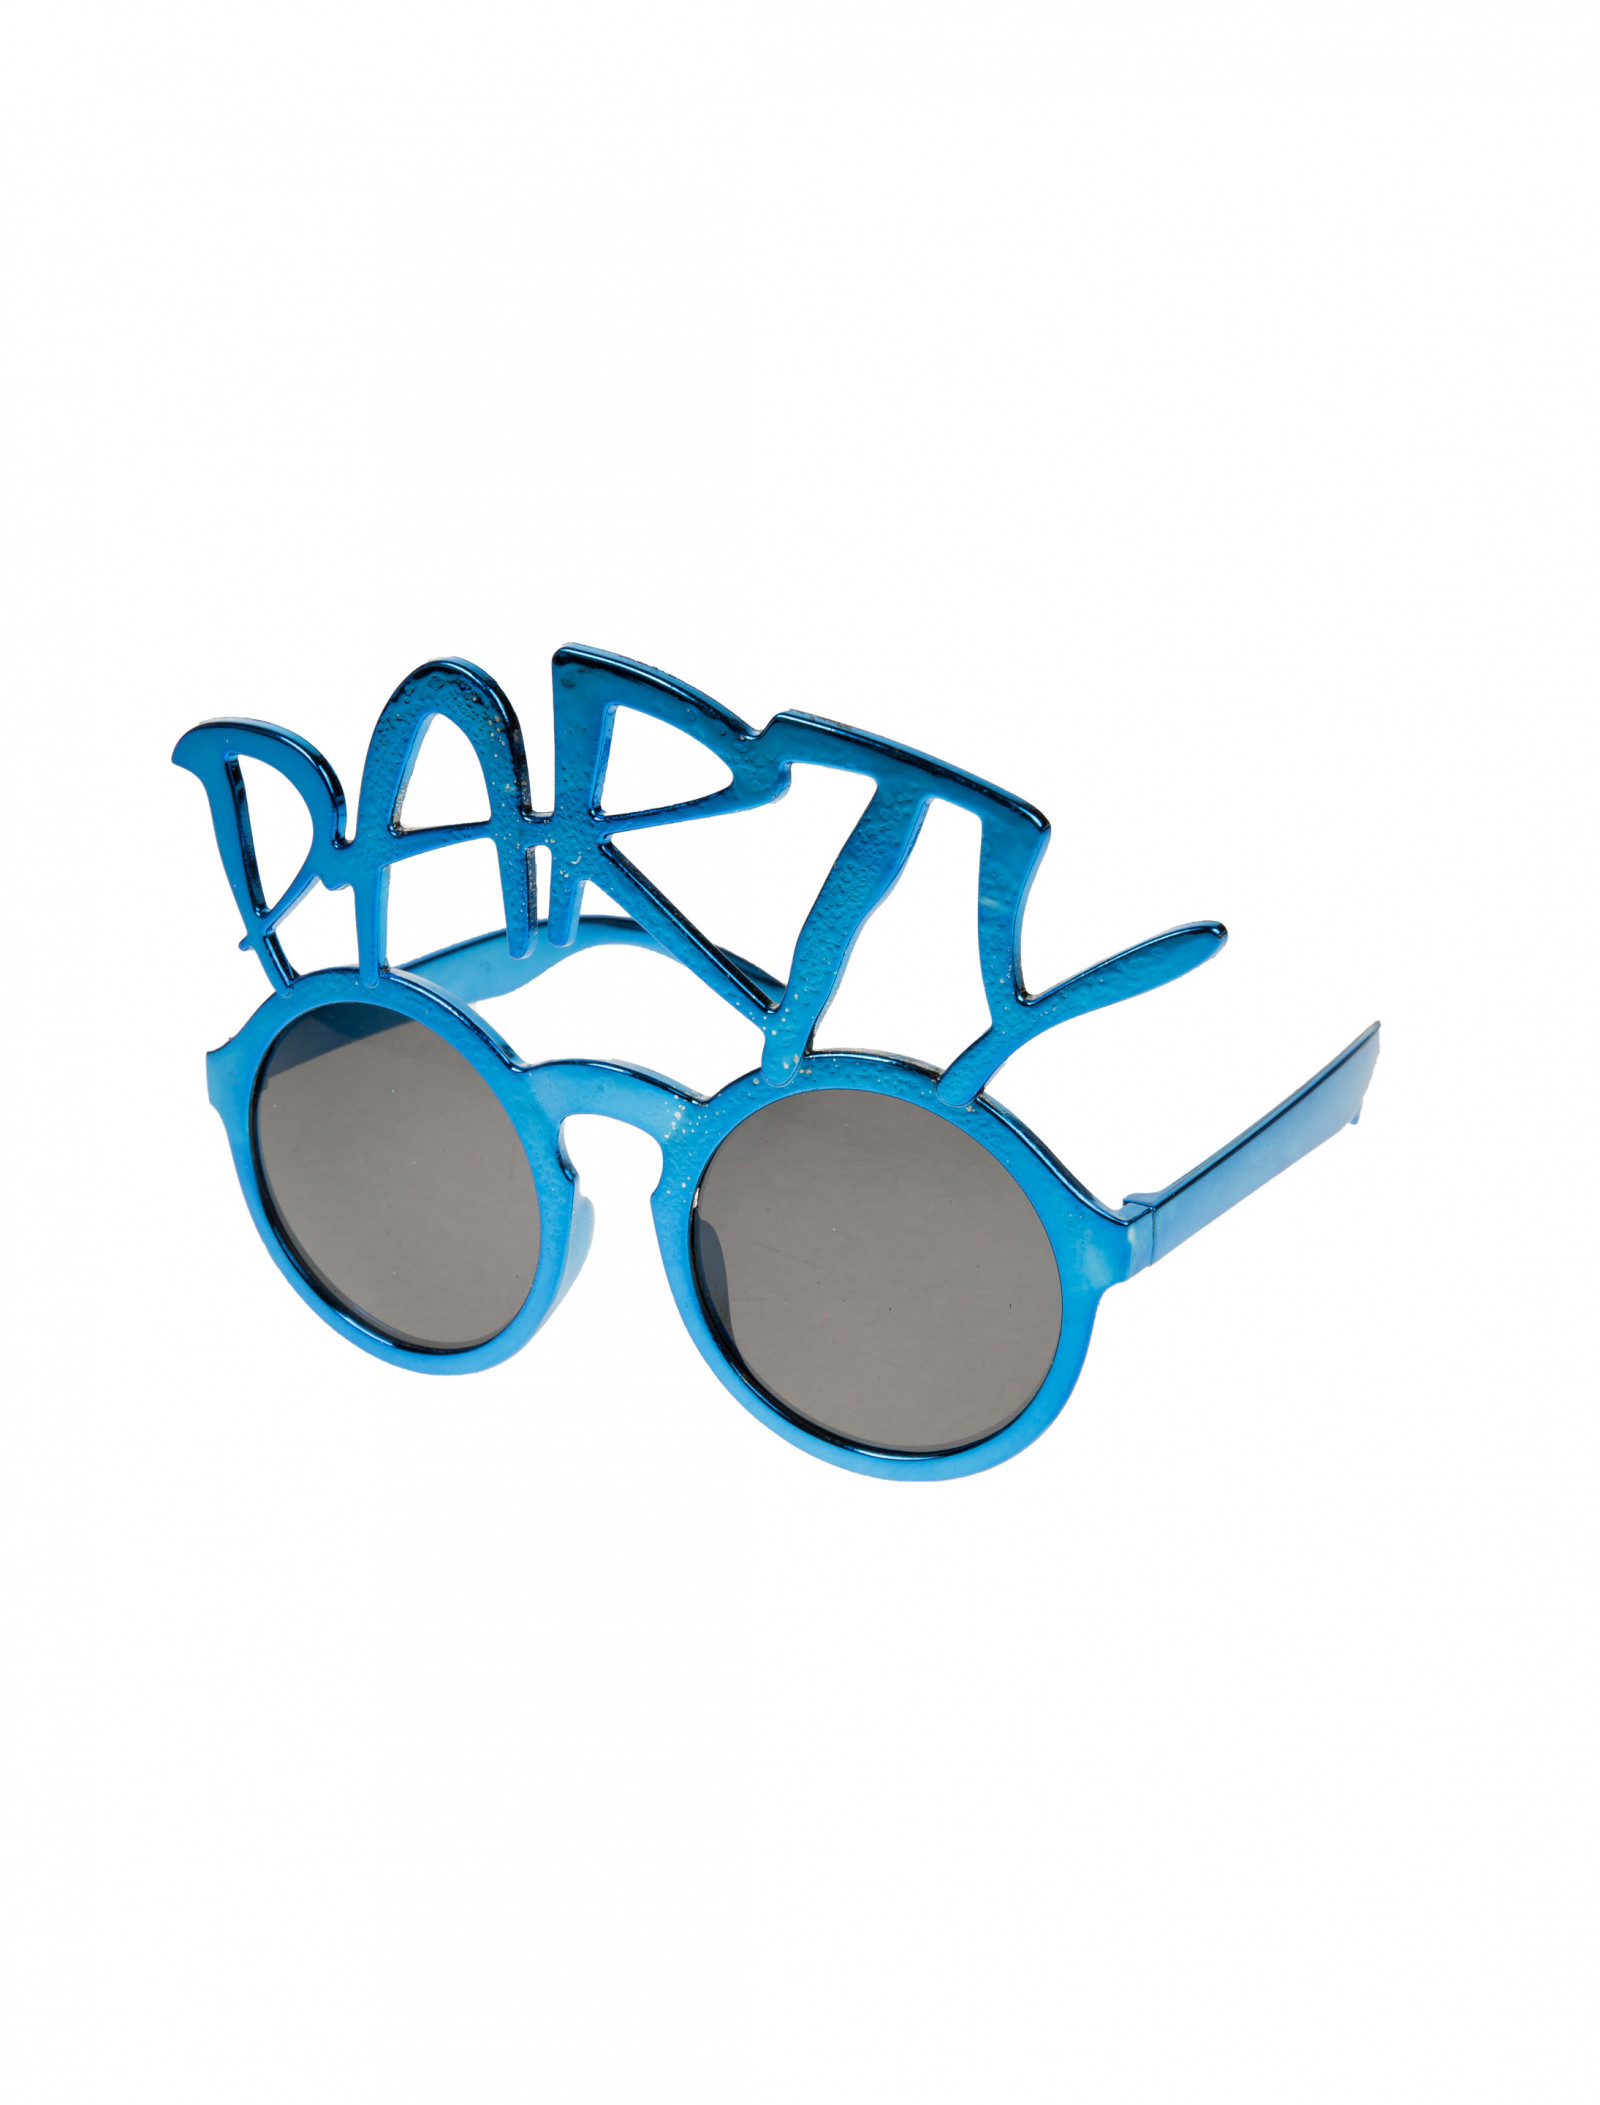 Brille Glases Partybrille Party Disco Karneval Fasching Blau